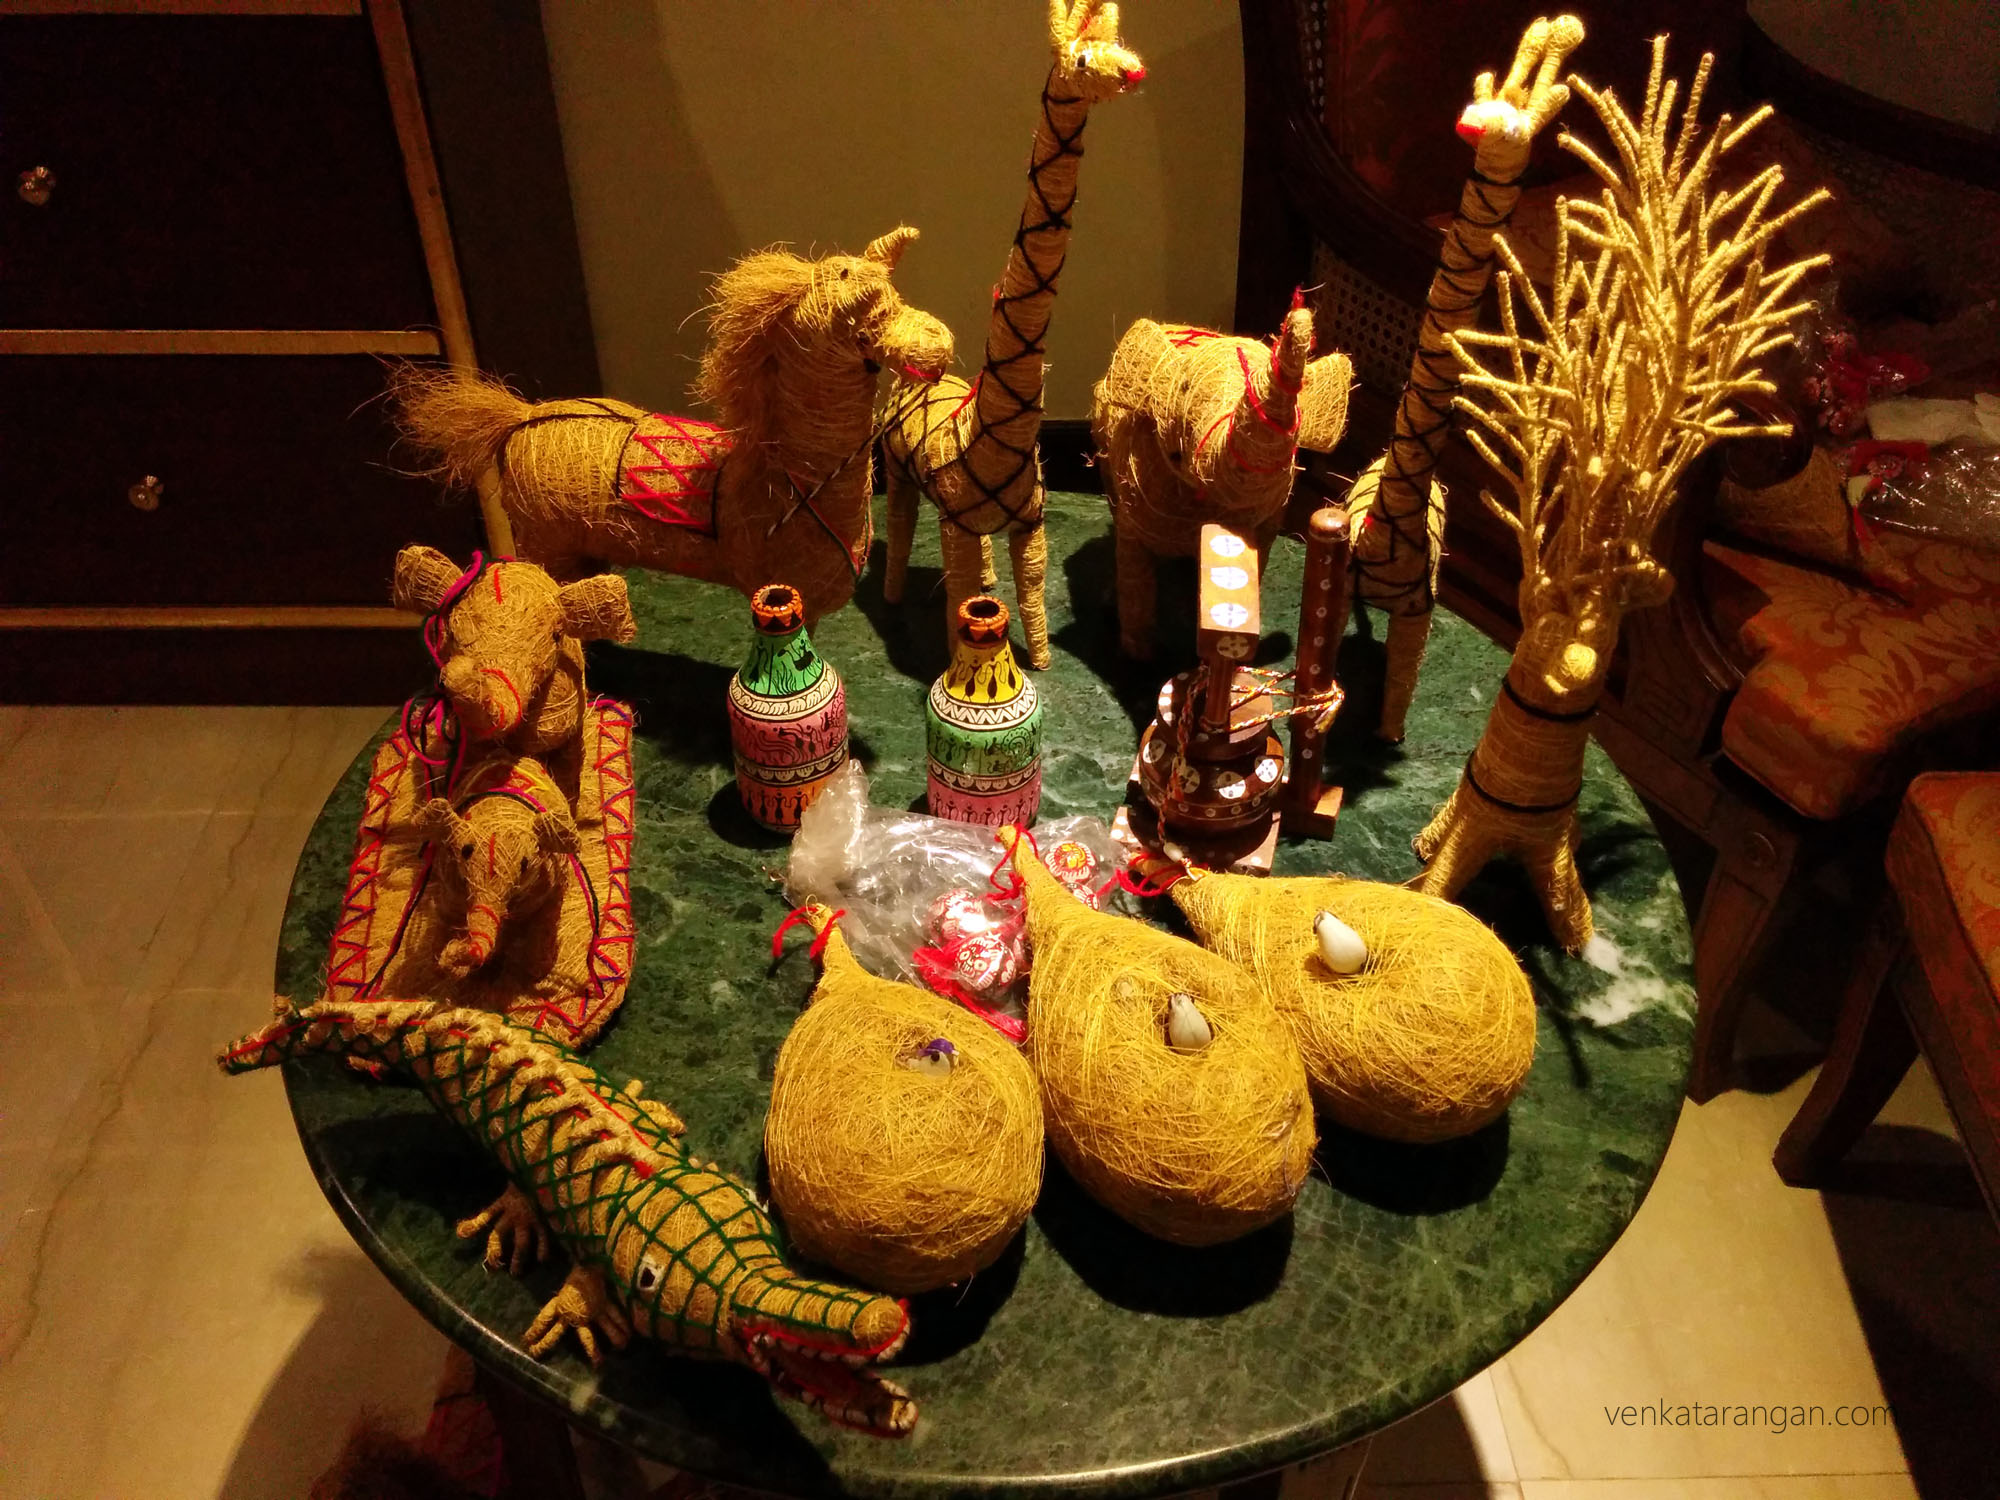 Replica of a crocodile, Elephants, Horses, Giraffe - all made with coconut stray